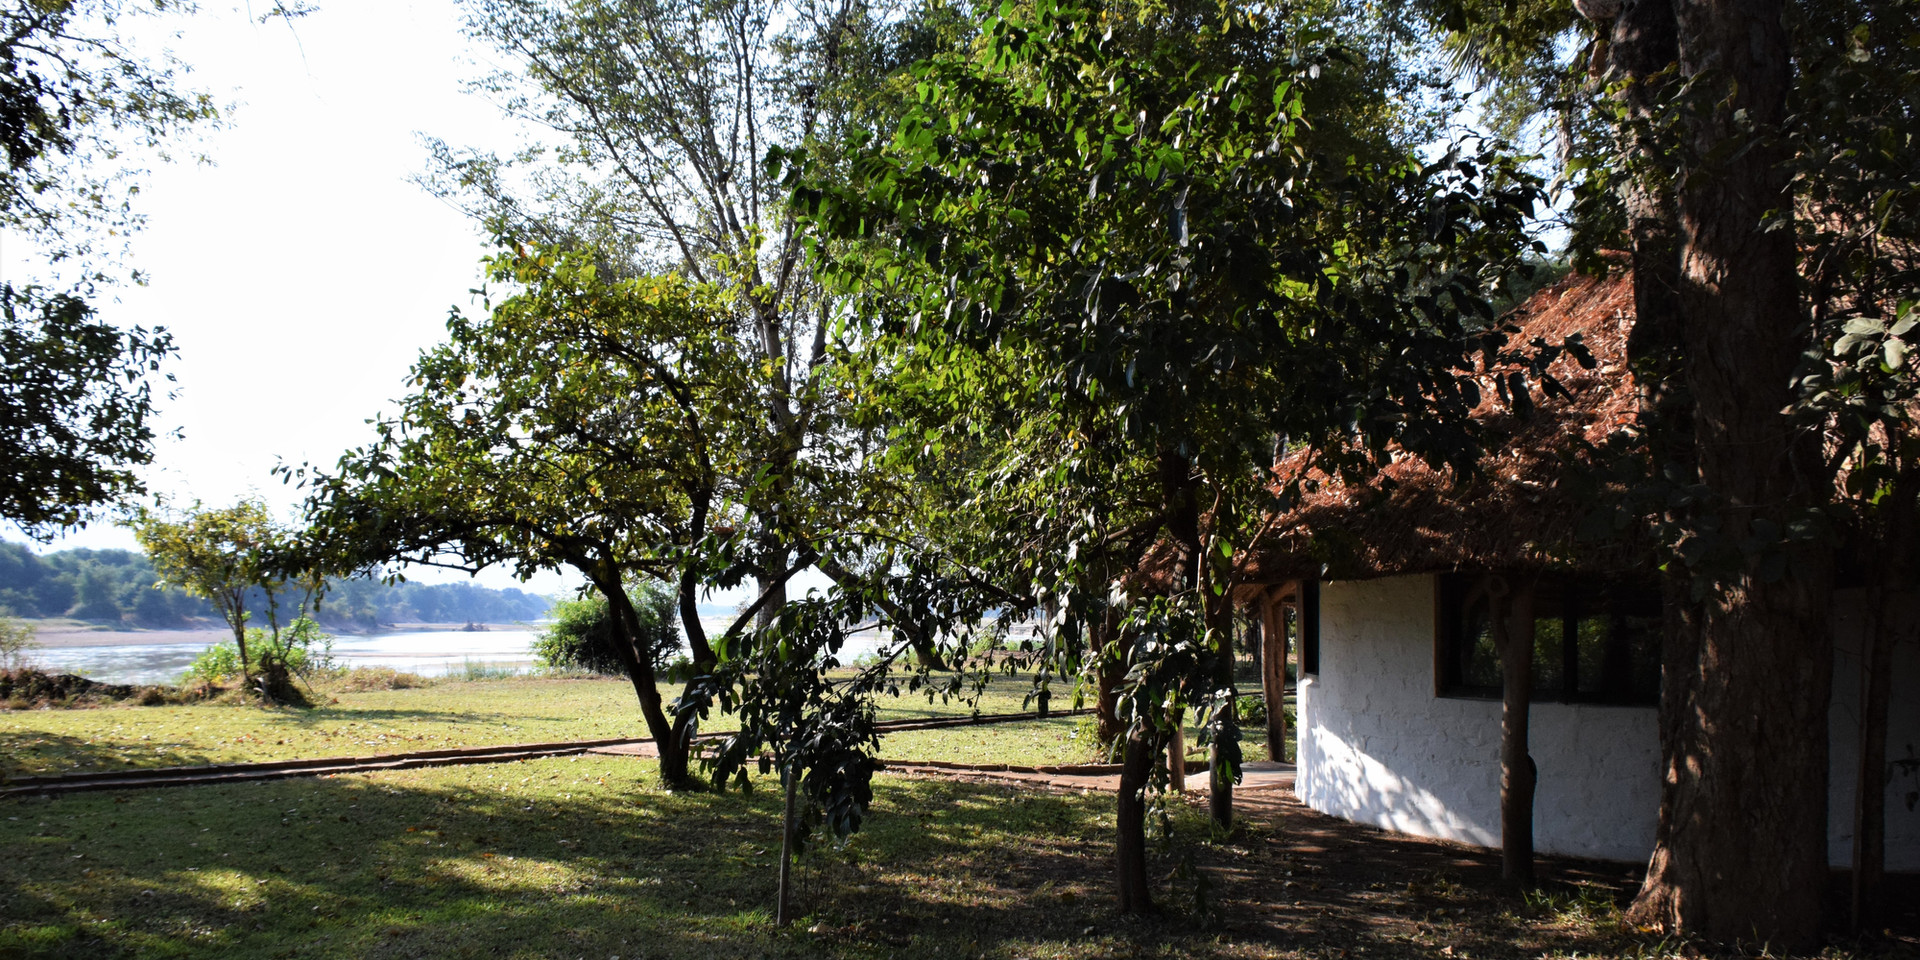 The camp is spread out under beautiful old trees with a well kept lawn to the edge of the Luangwa River